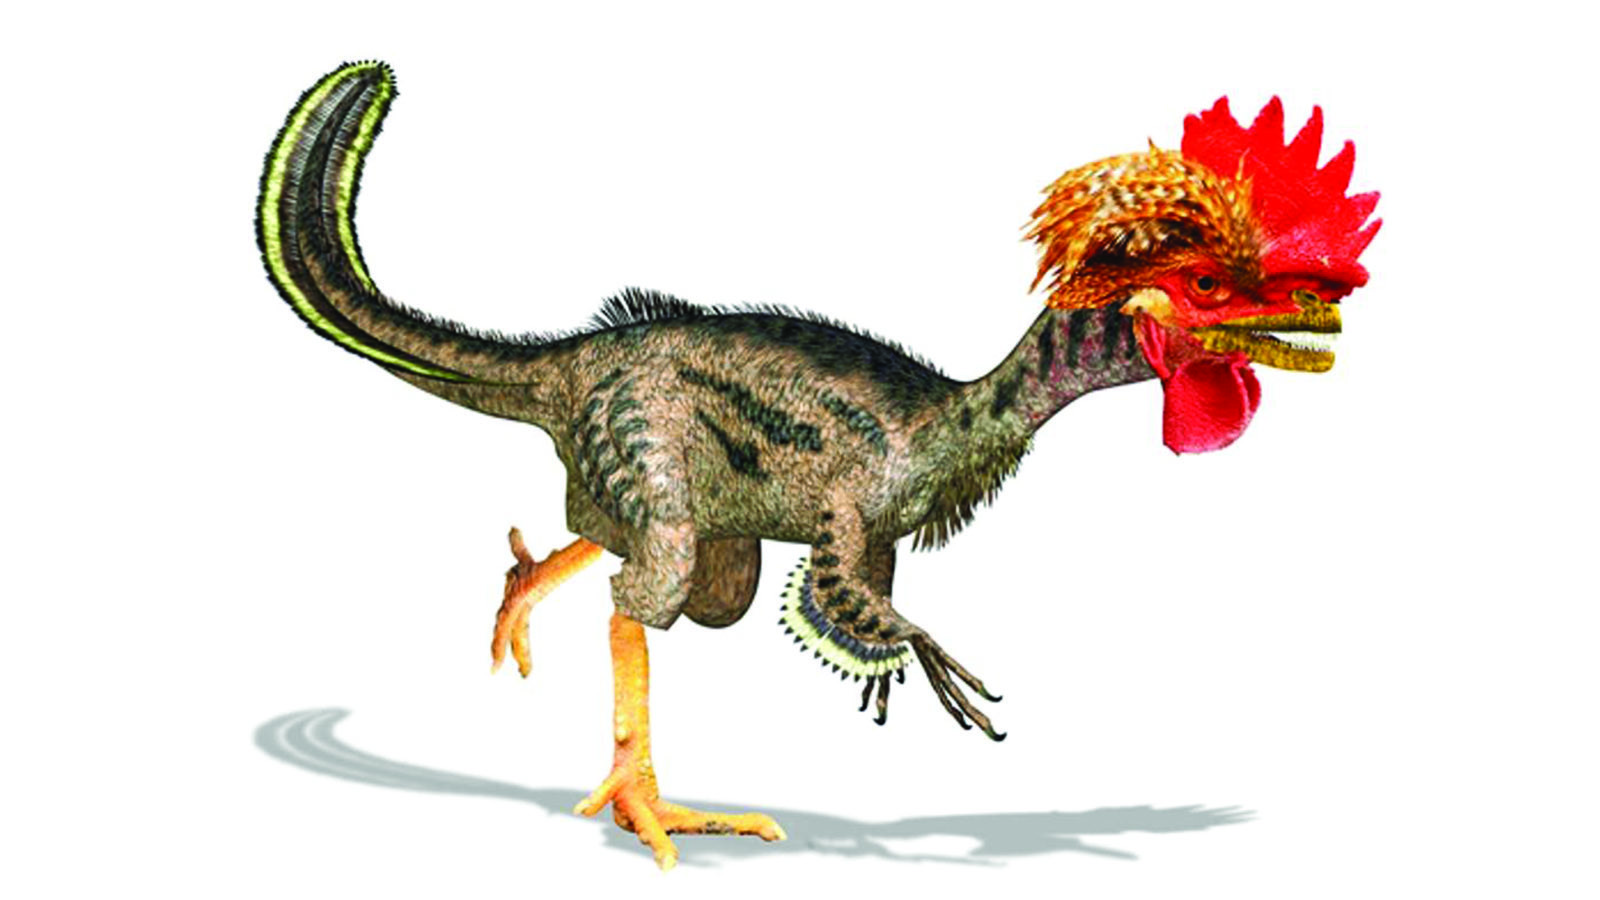 Turning Birds into Dinosaurs using gene therapy, the dino-chicken